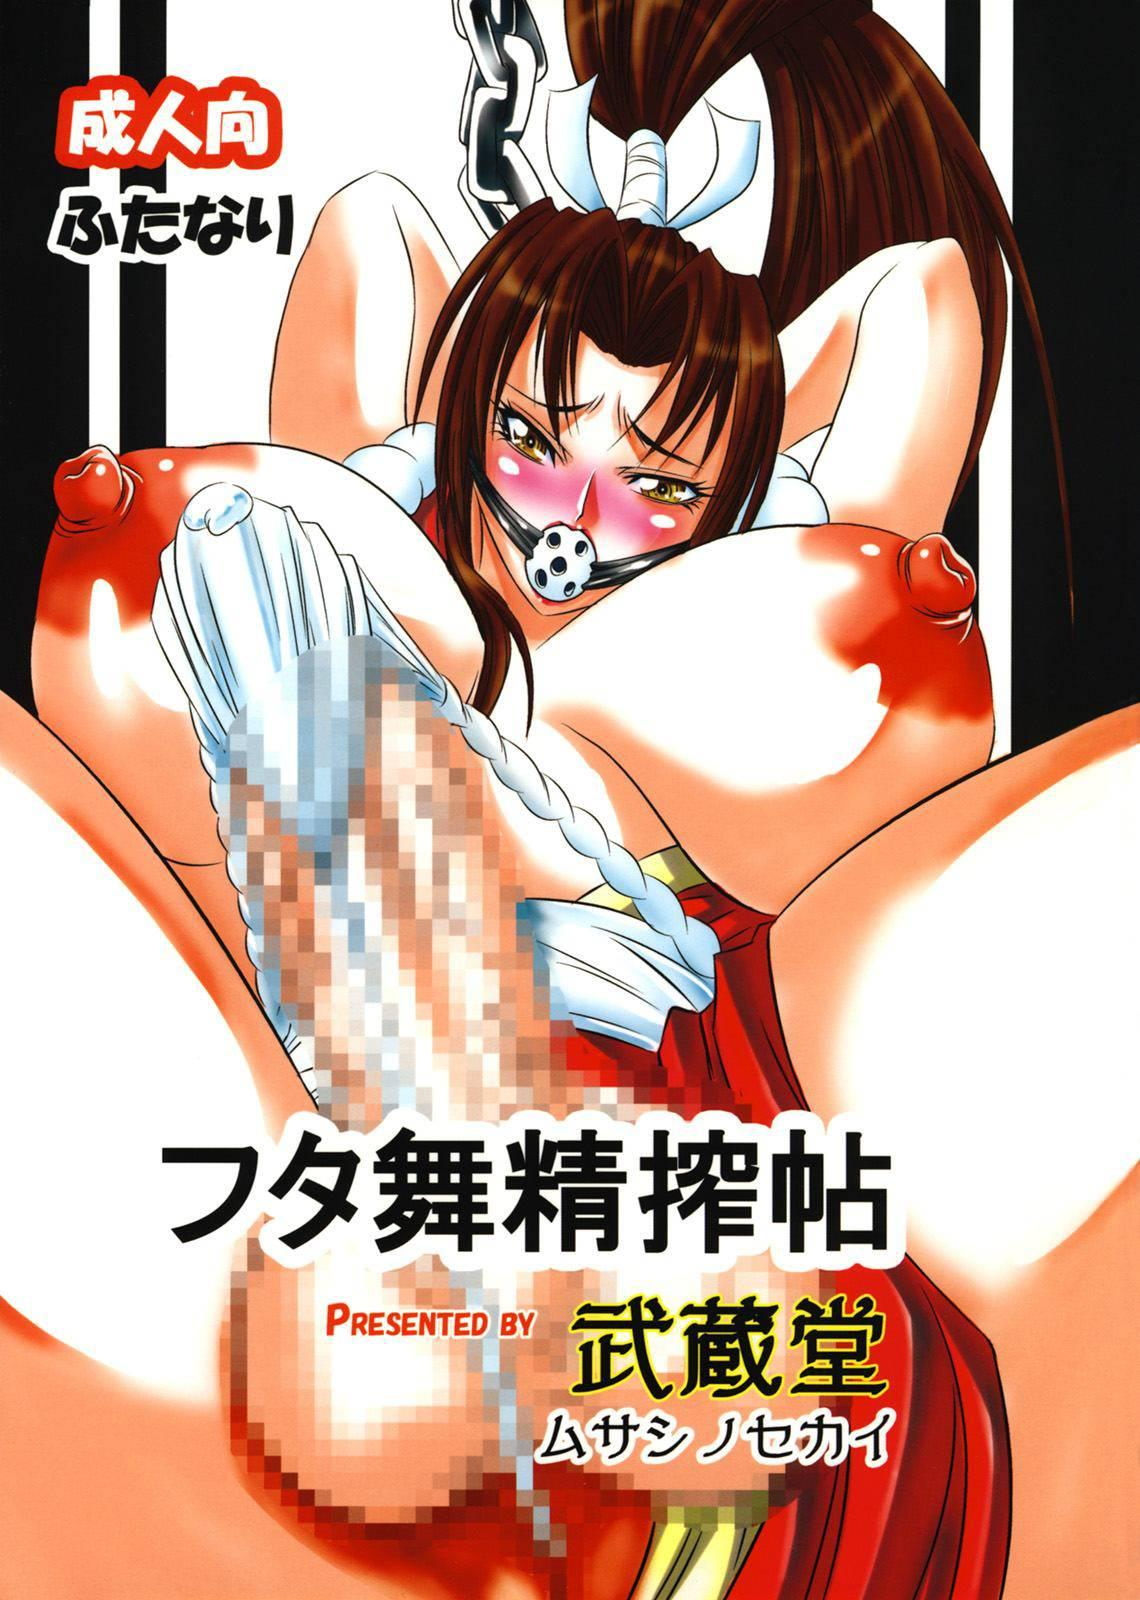 King of fighters hentai pictures of mai